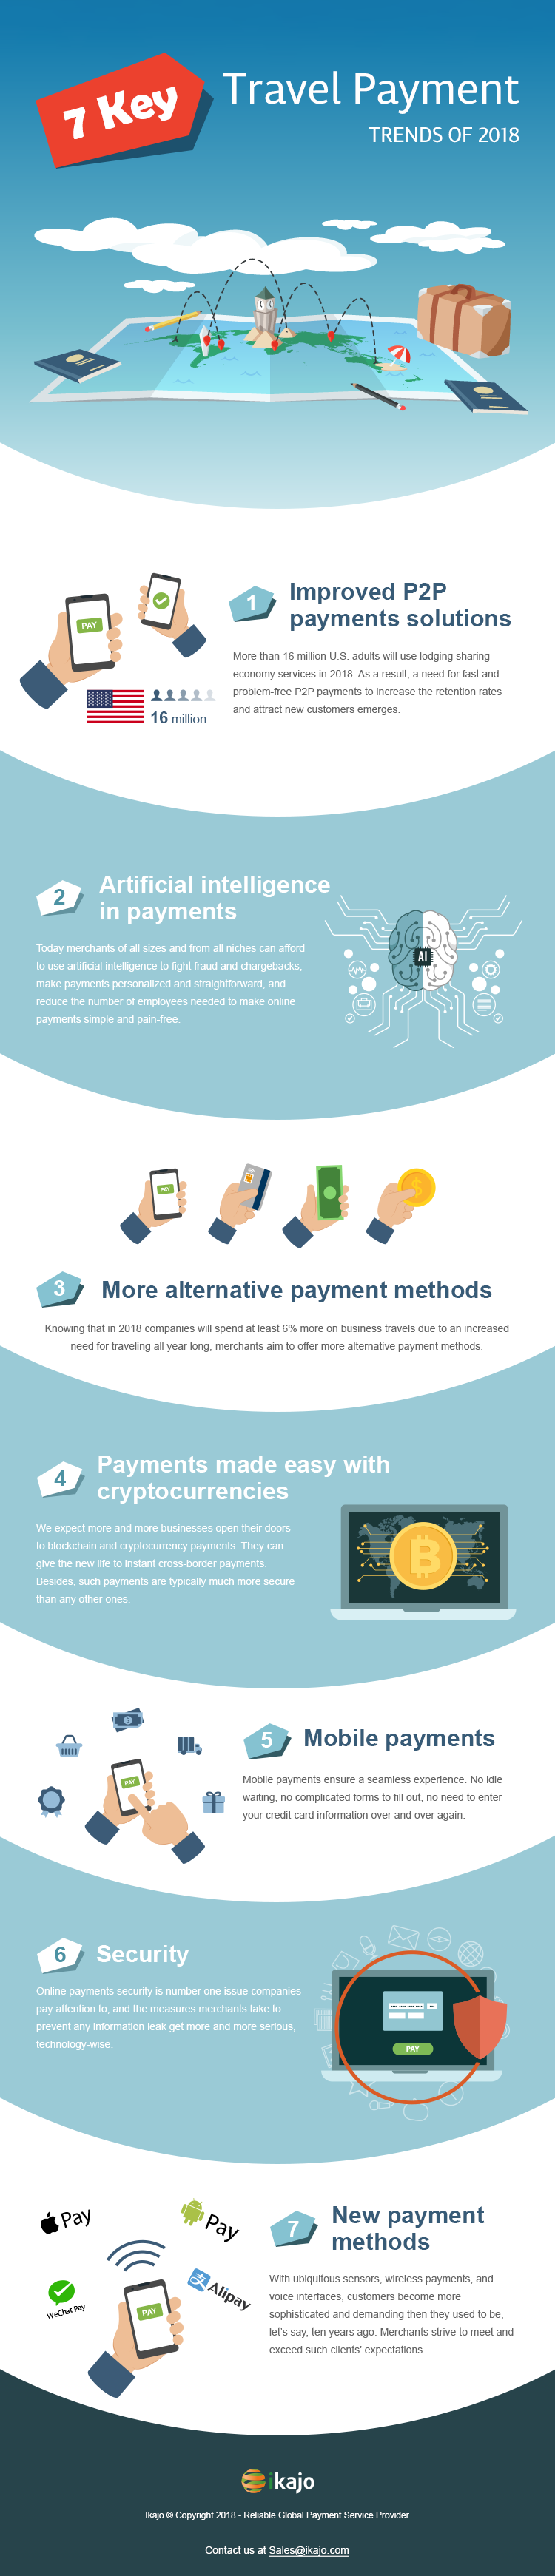 An infographic on 7 incredible travel payment trends of 2018